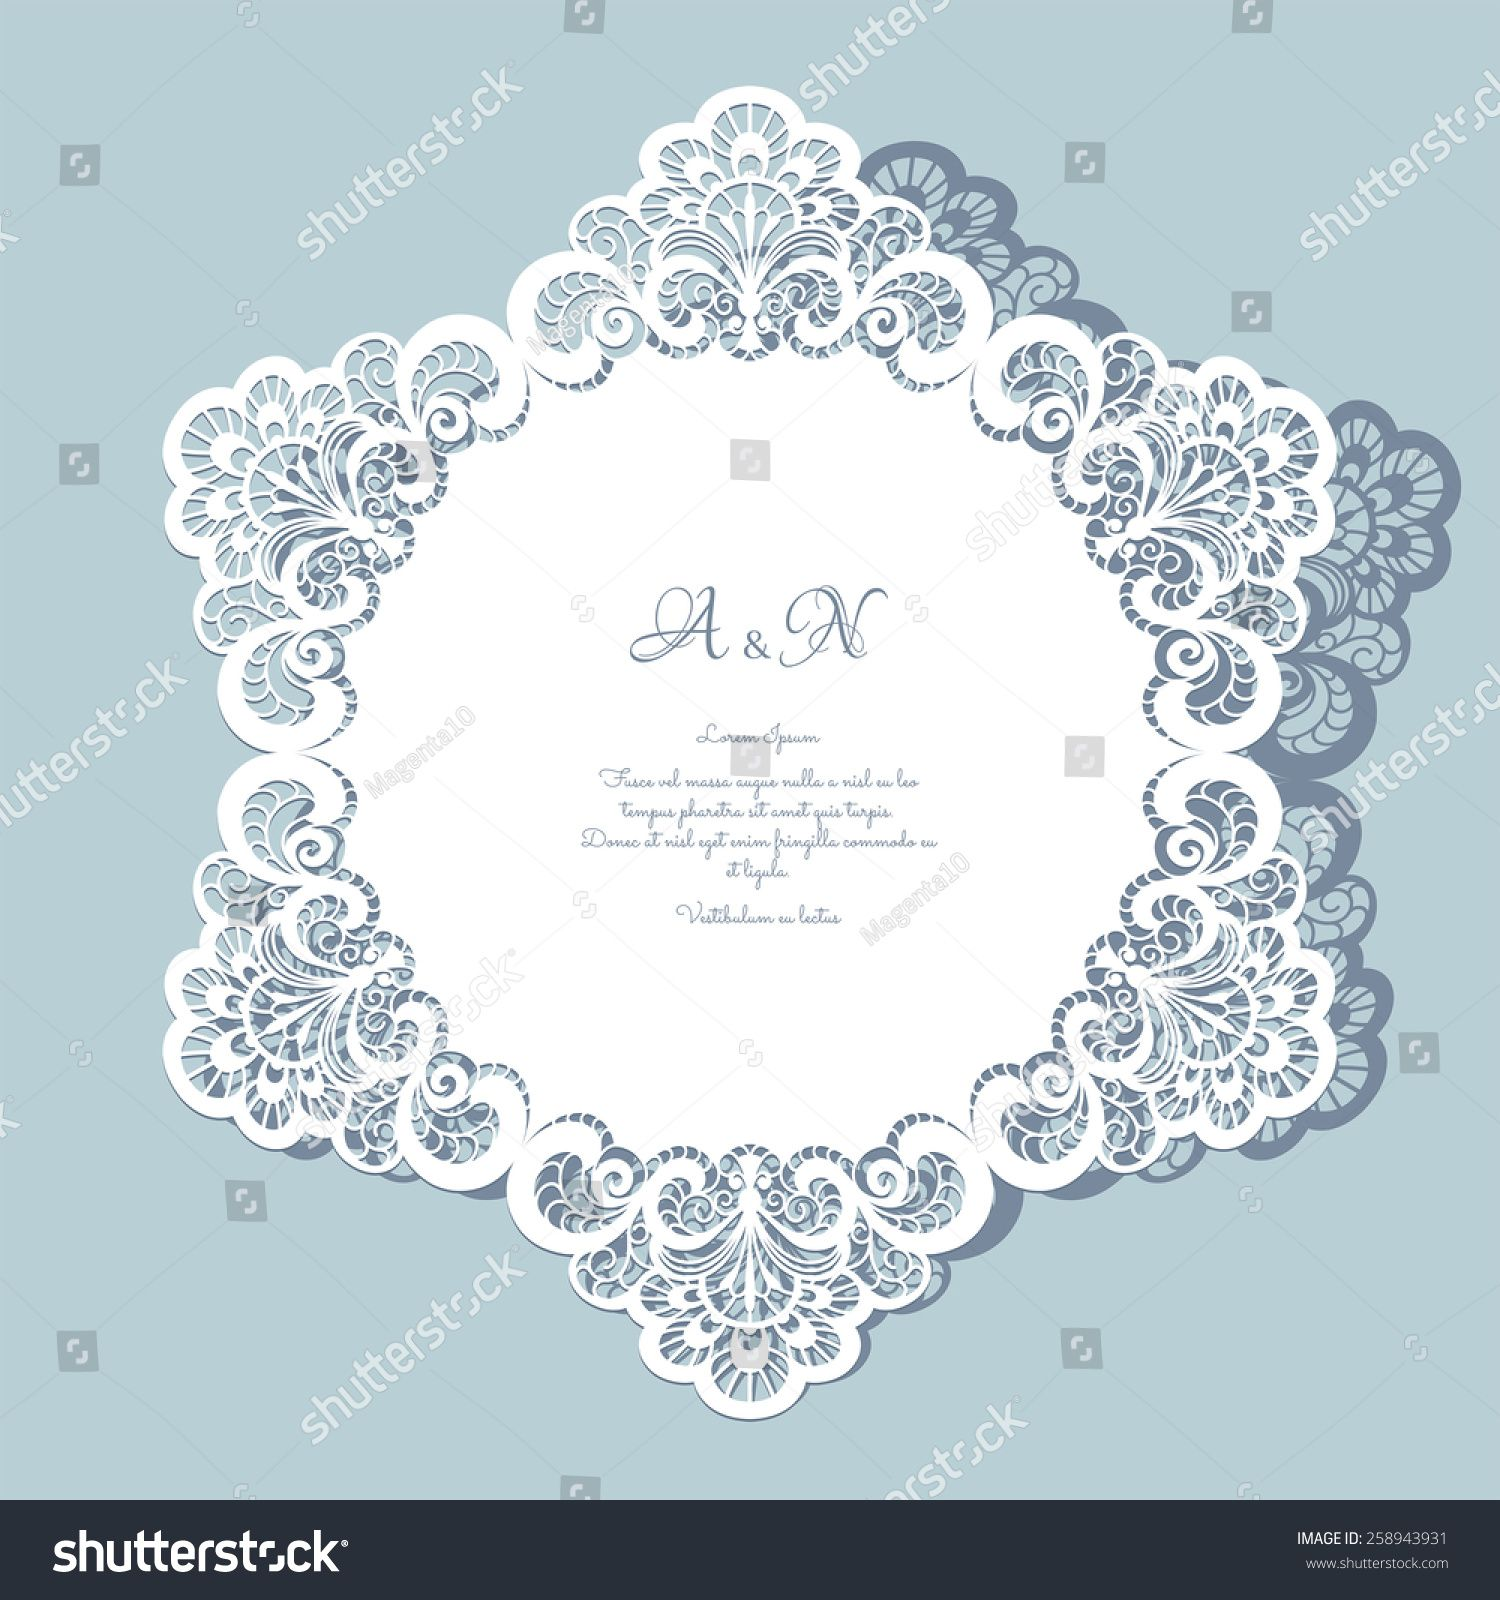 Outstanding Paper Doily Wedding Invitations Images - Invitations ...